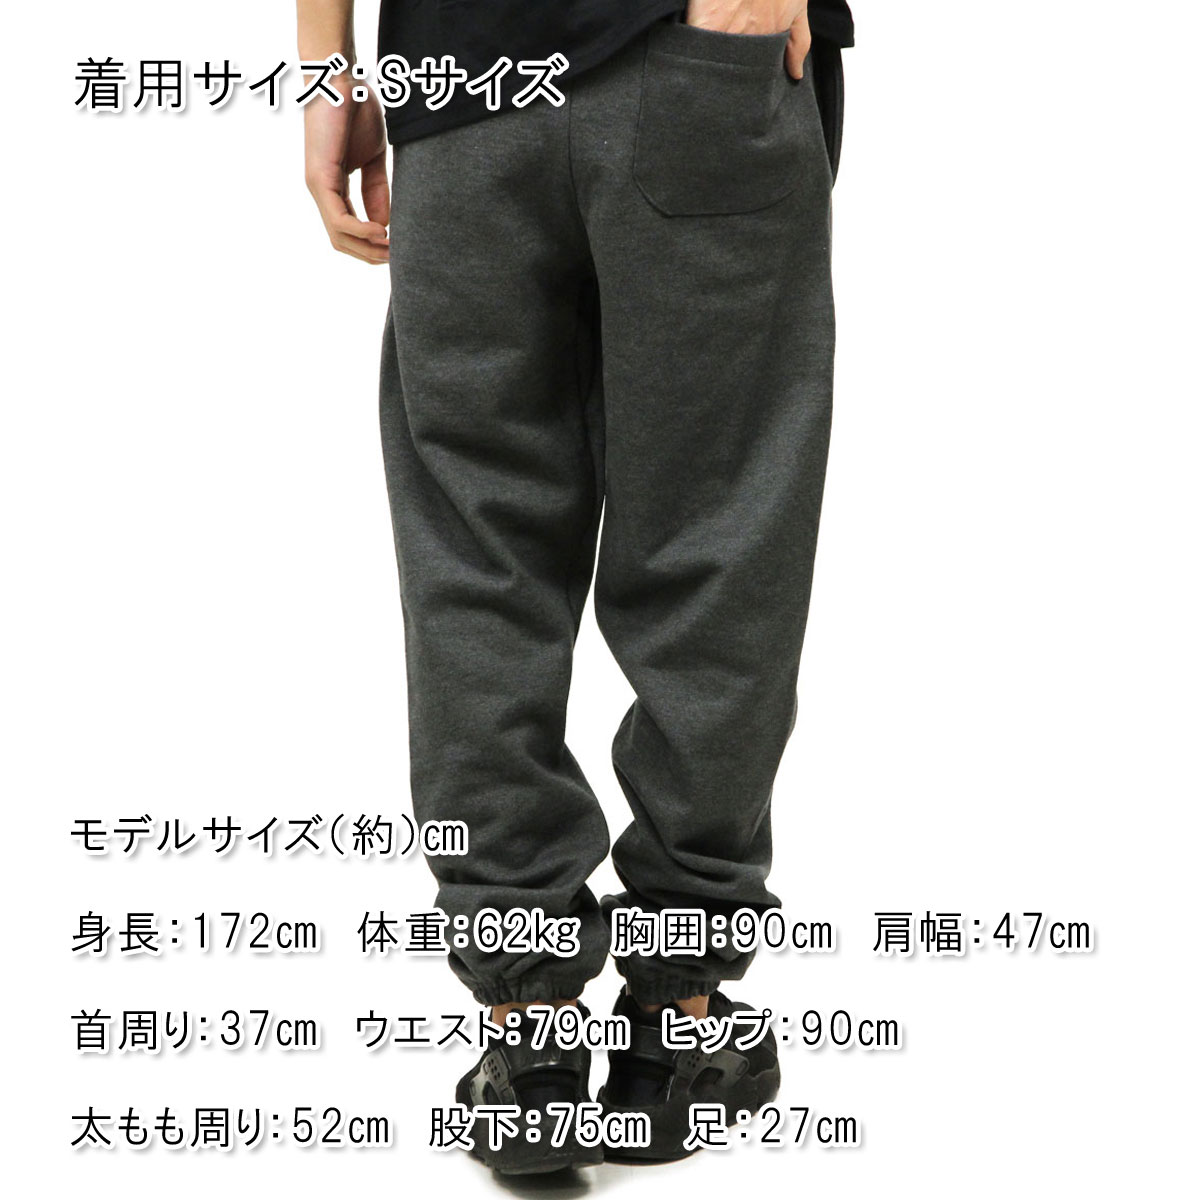 チャンピオン CHAMPION 正規品 メンズ ハーフパンツ SWEAT HALF PANTS P4971 Reverse Weave Pant w/ pockets G61-GRANITEHEATHER